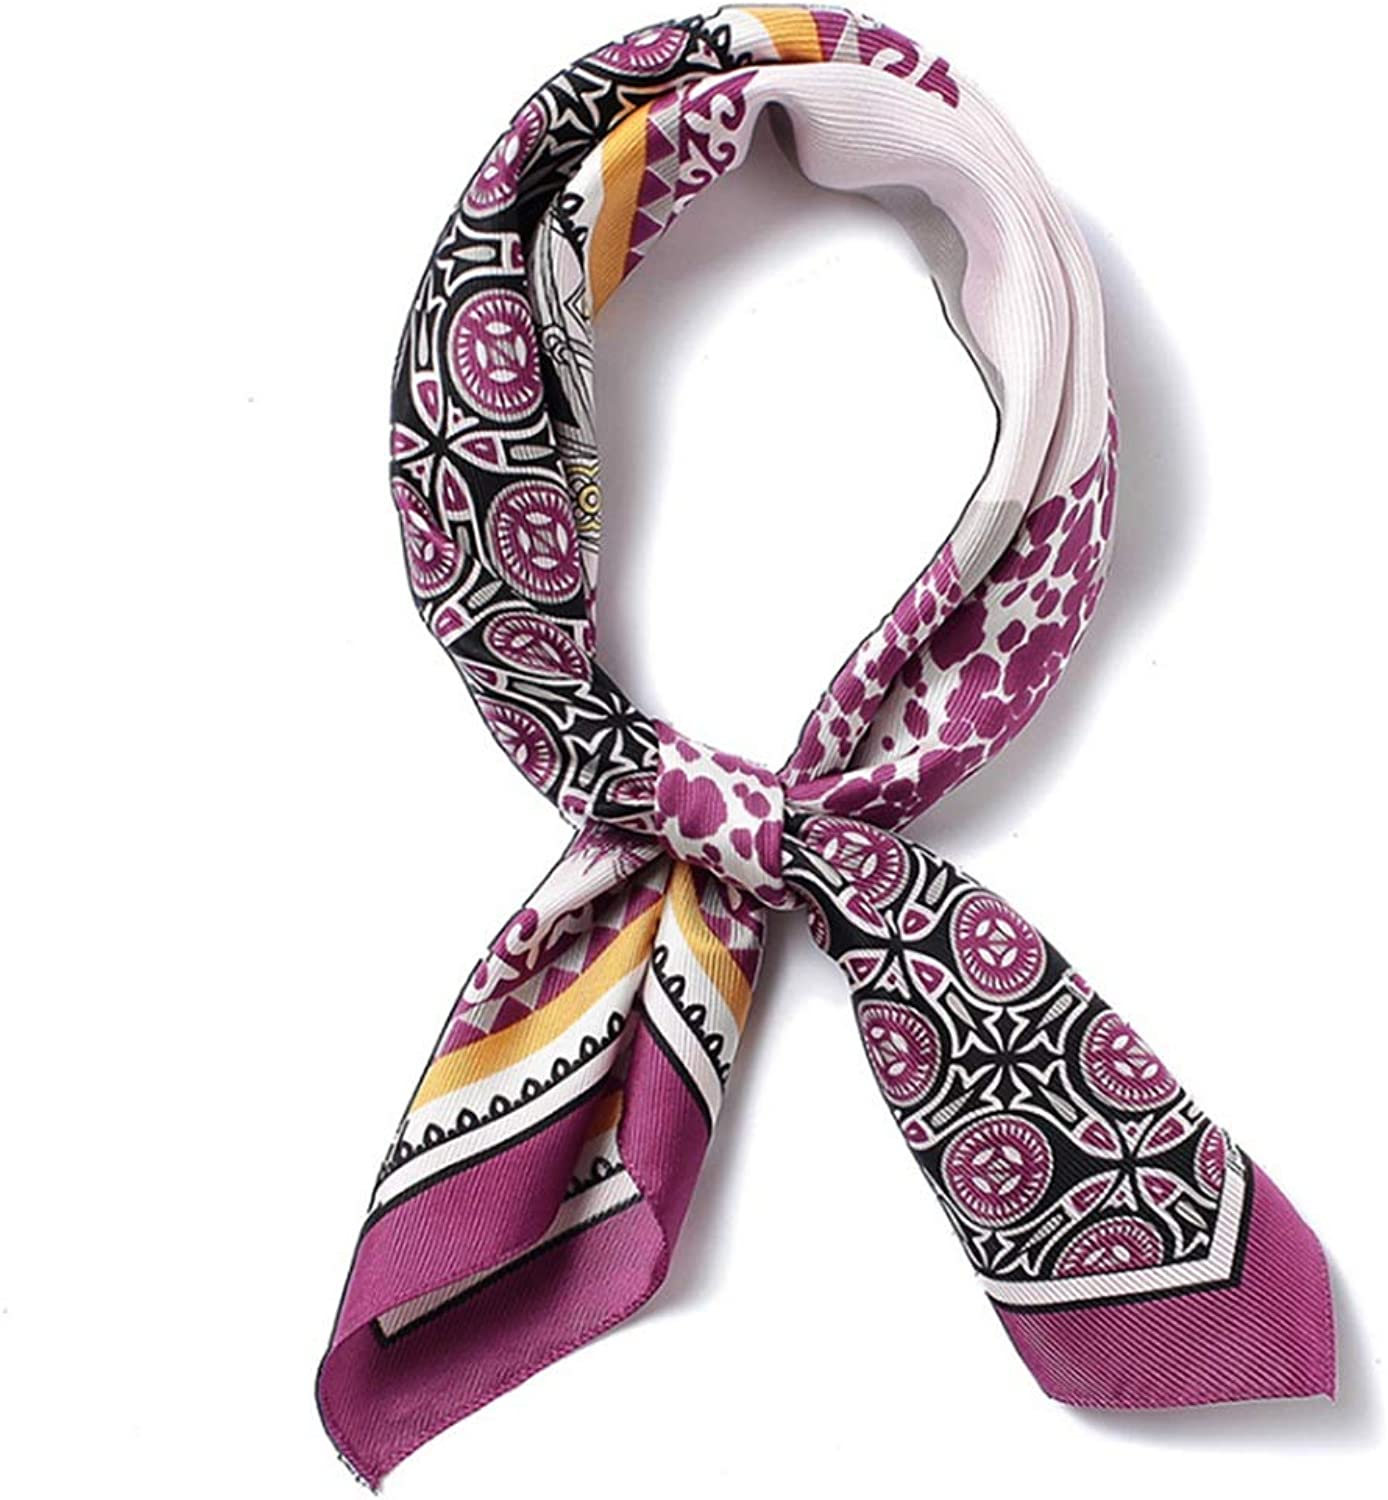 Scarf Autumn And Winter Square Towel European And American Wind Twill Silk Scarf Beach Towel Women, Fashion Scarves